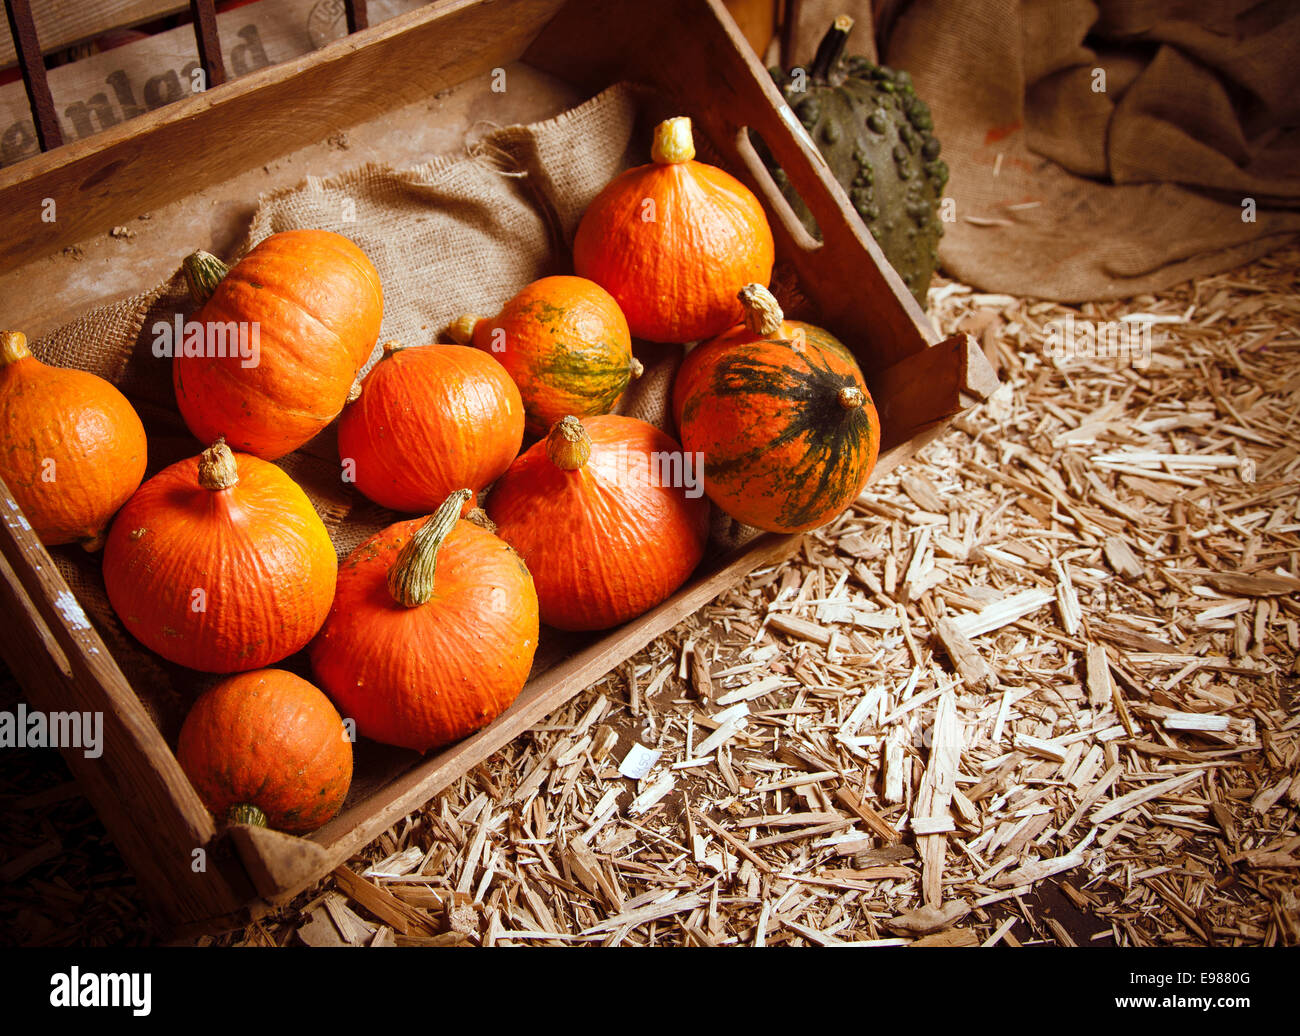 Pumpkins in a crate on a straw background for fall concepts Stock Photo